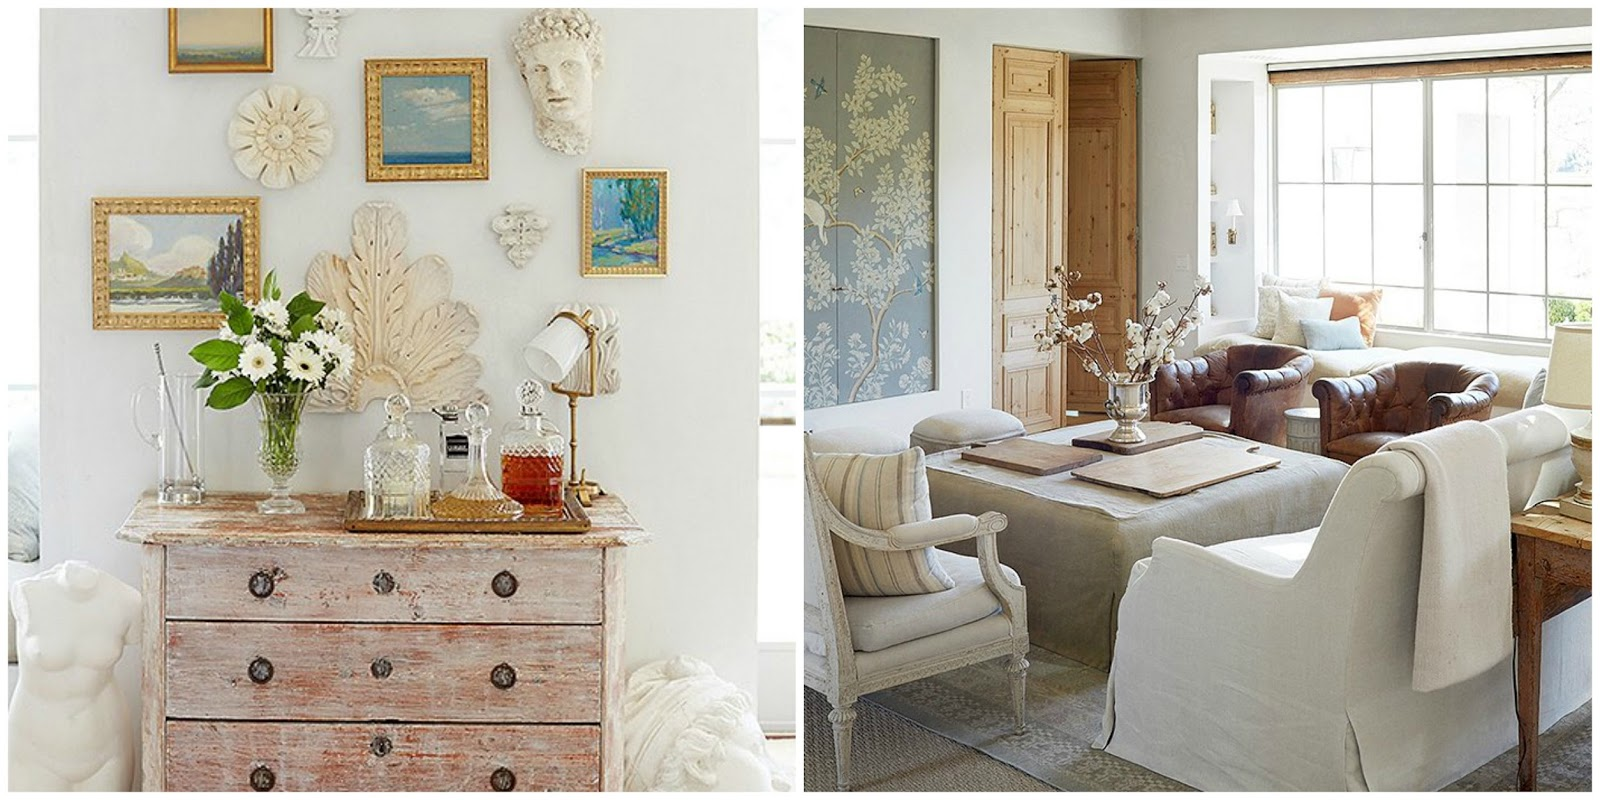 Swedish antiques in modern farmhouse interiors of Patina Farm